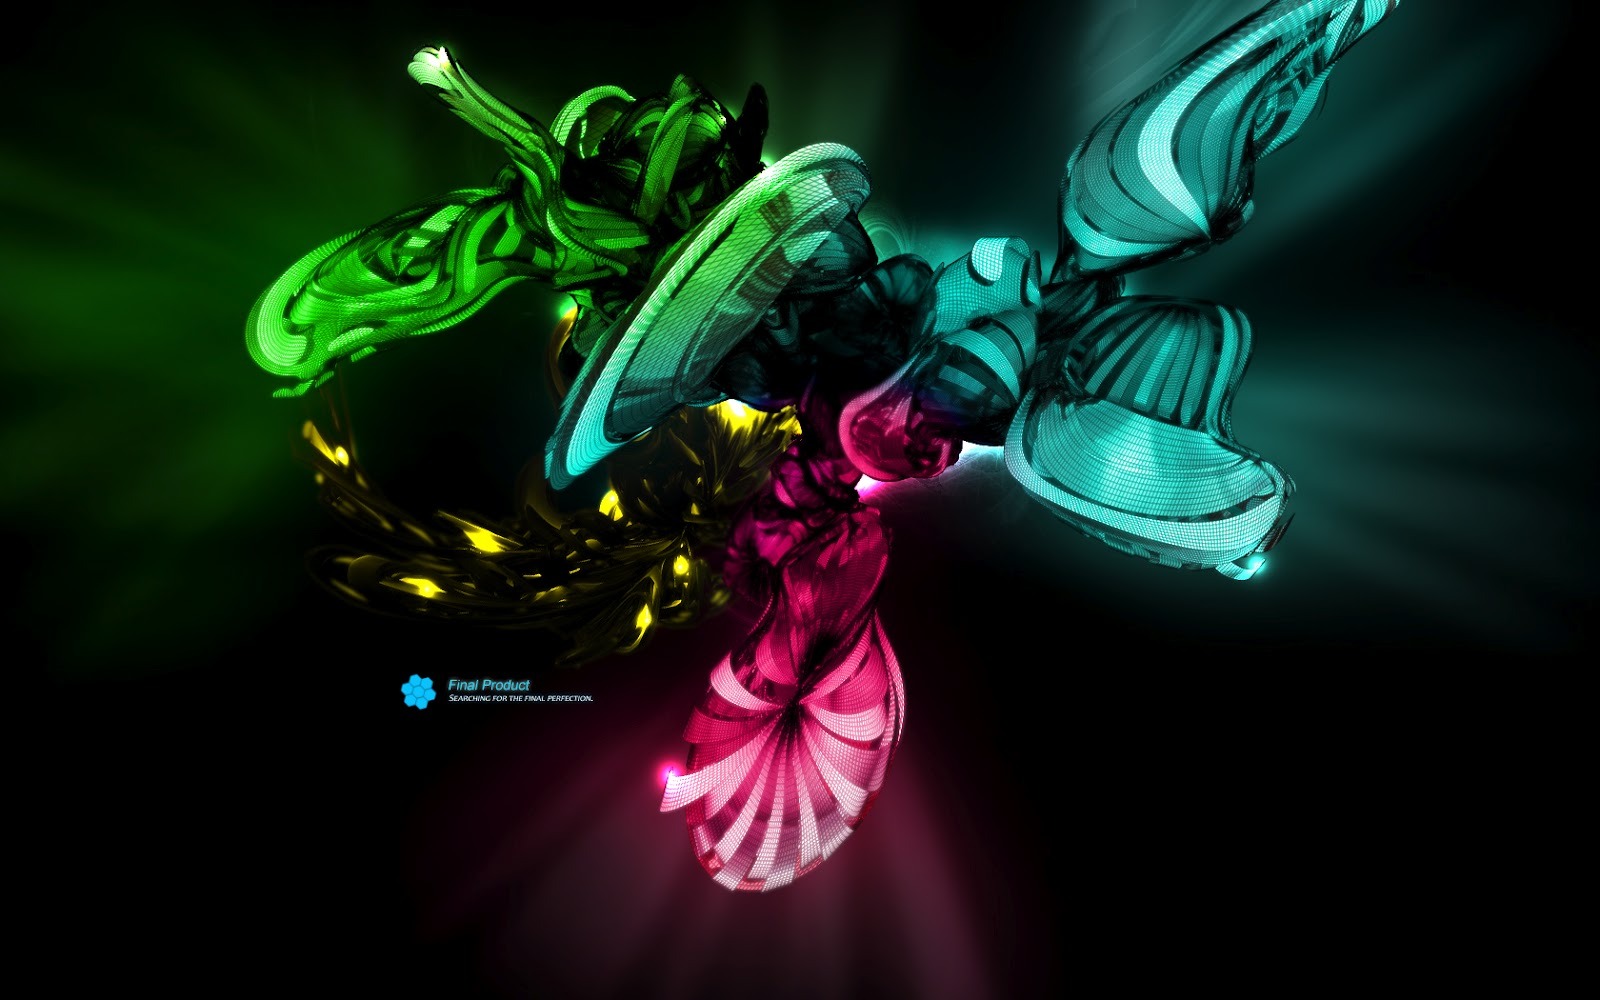 3d Wallpapers For Andro - Background Gif Hd 3d , HD Wallpaper & Backgrounds